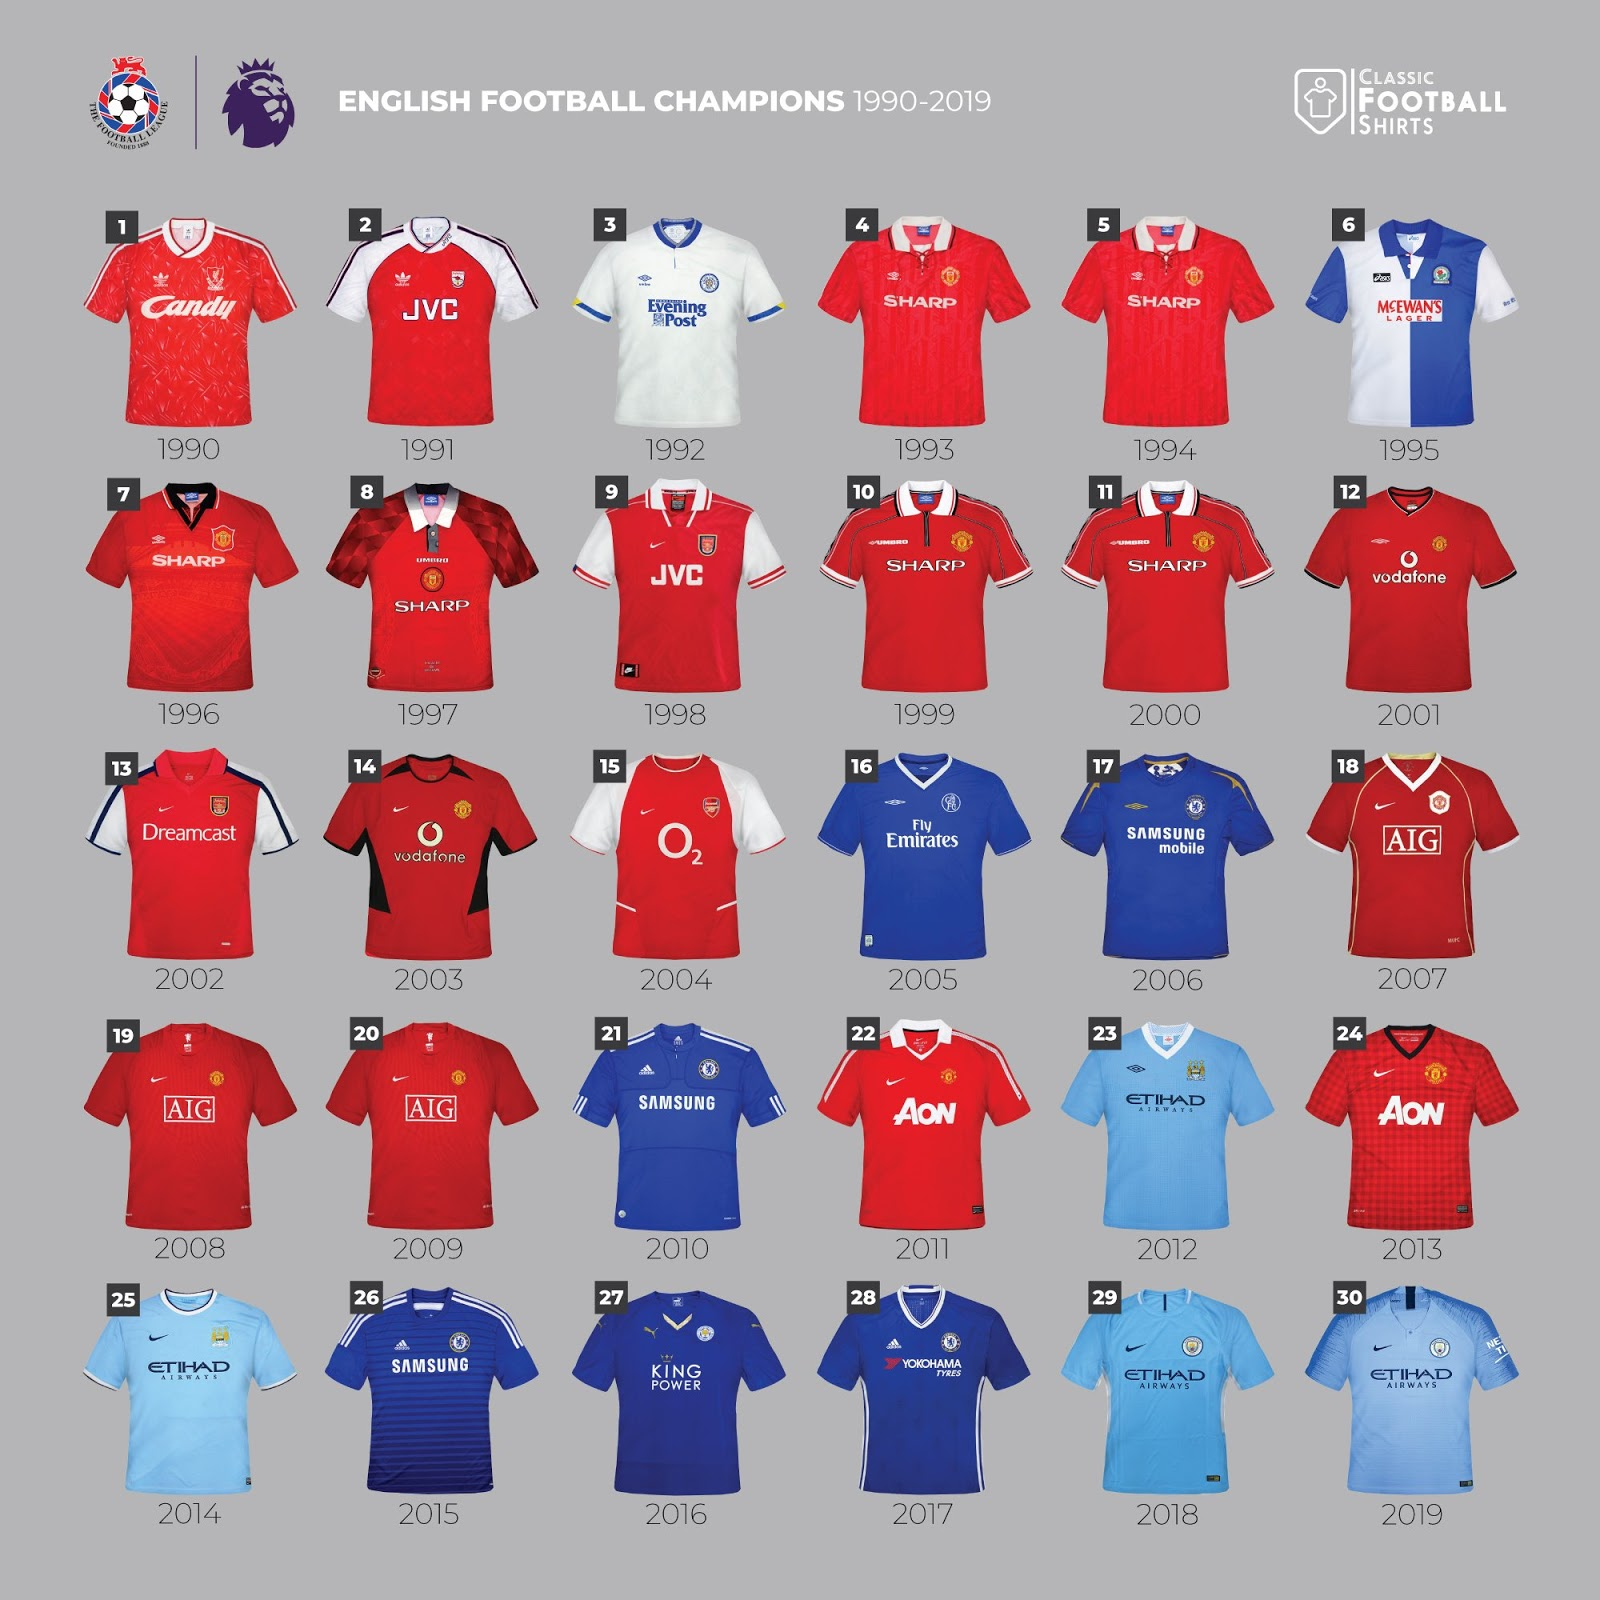 outlet store 82668 155be Here Are All 30 English Premier League / Football League ...